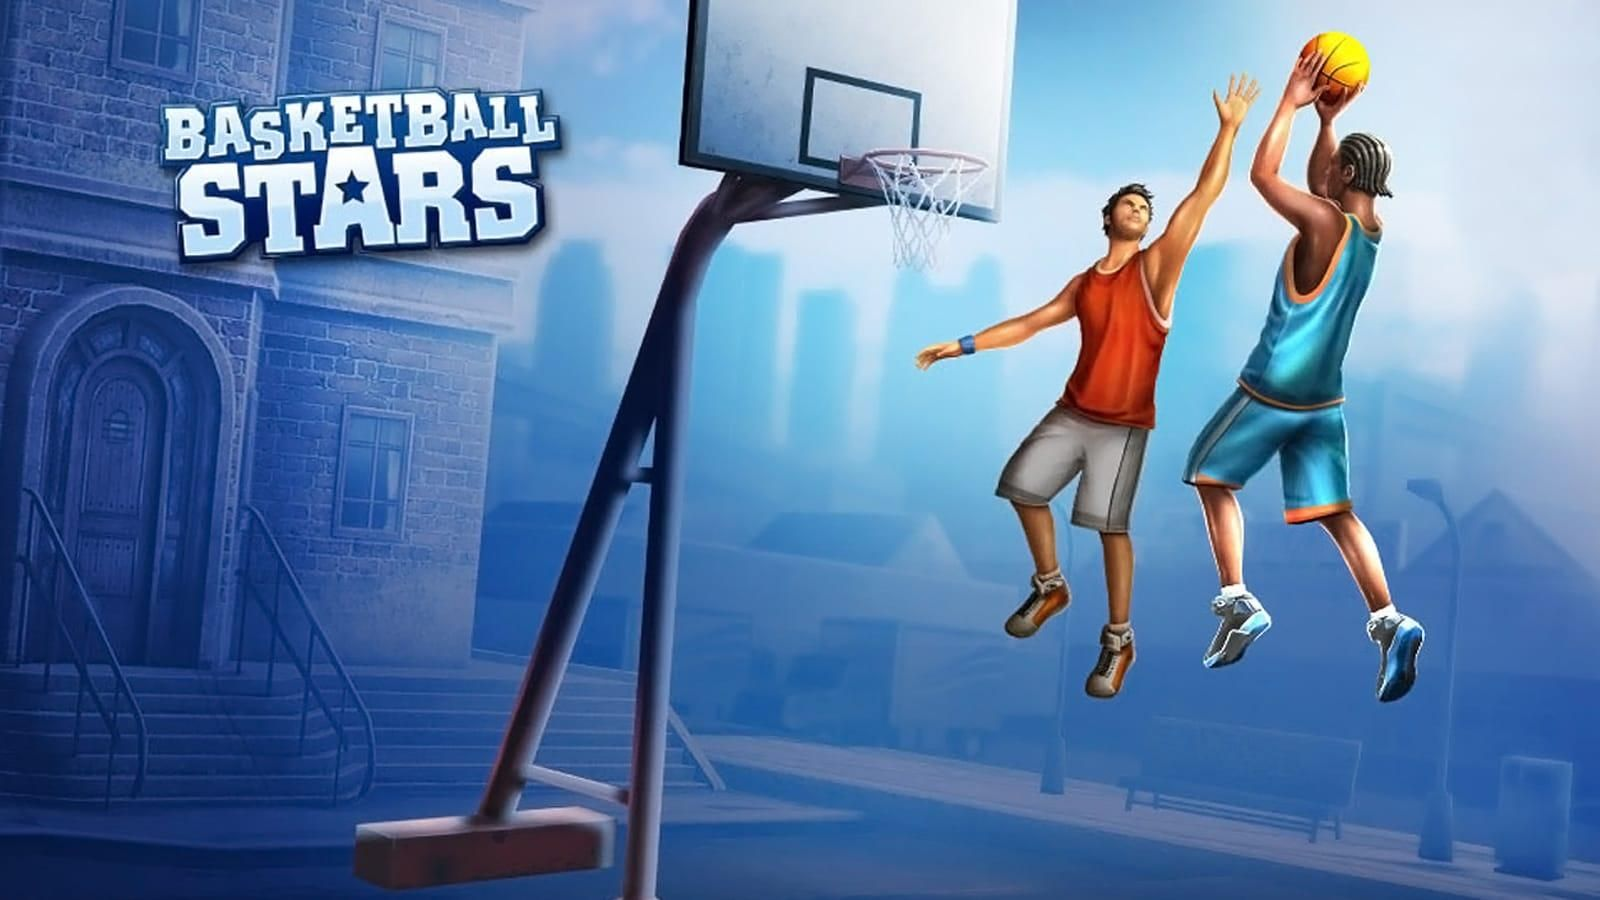 Basketball stars hack online cheat for generating